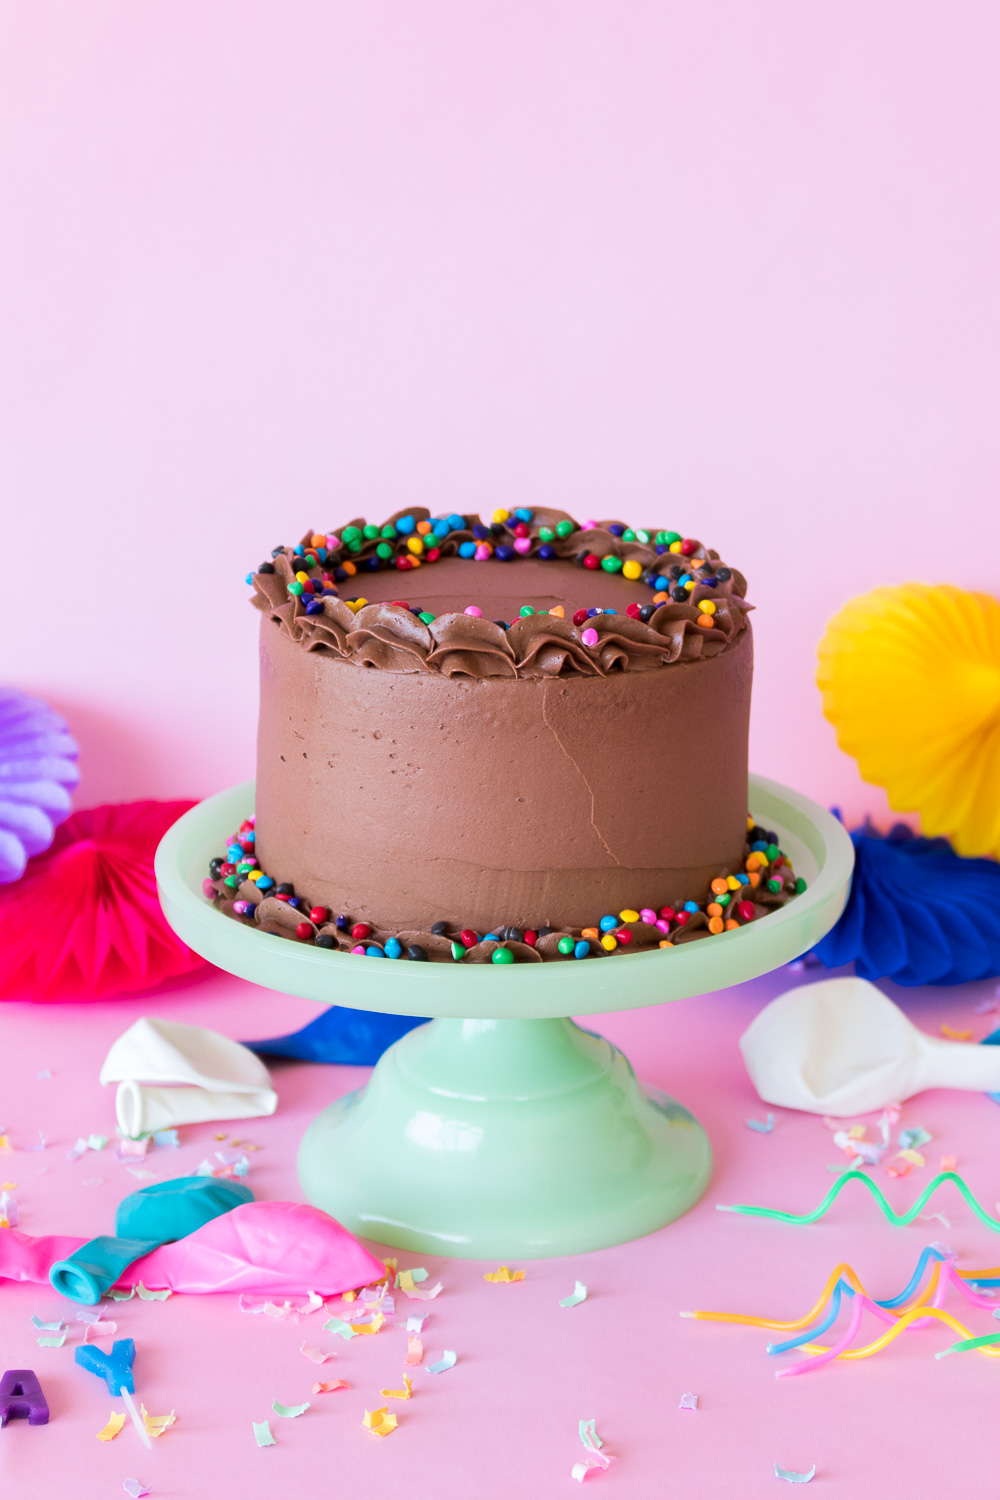 Club Crafted's 1st Blogiversary!